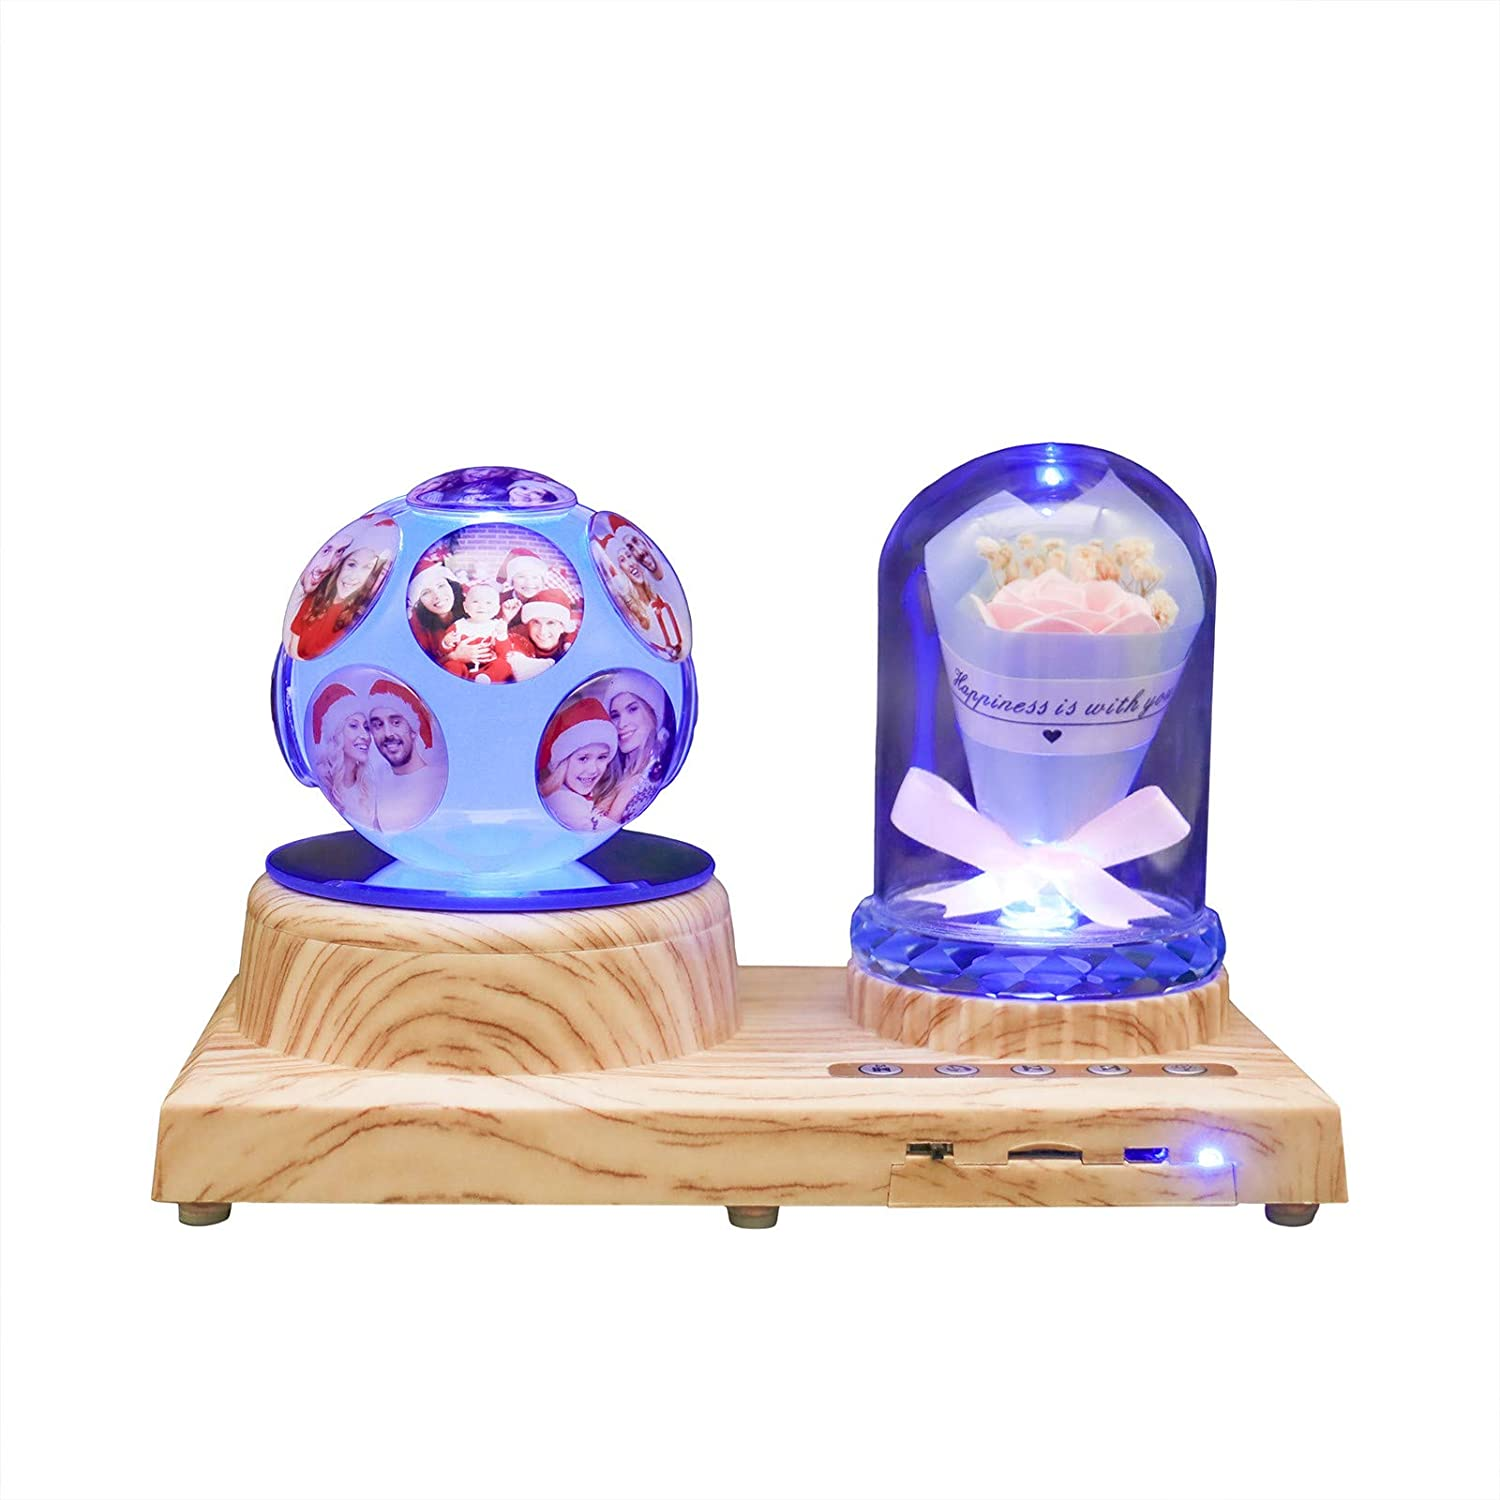 Custom 11 Photo Personalized Night Light 3D Crystal Lamp Custom Photo Picture Engraved Led Light 7 Color with Bluetooth Rose Wood Base Personalized Gift for Women PAPA Christmas Decoration